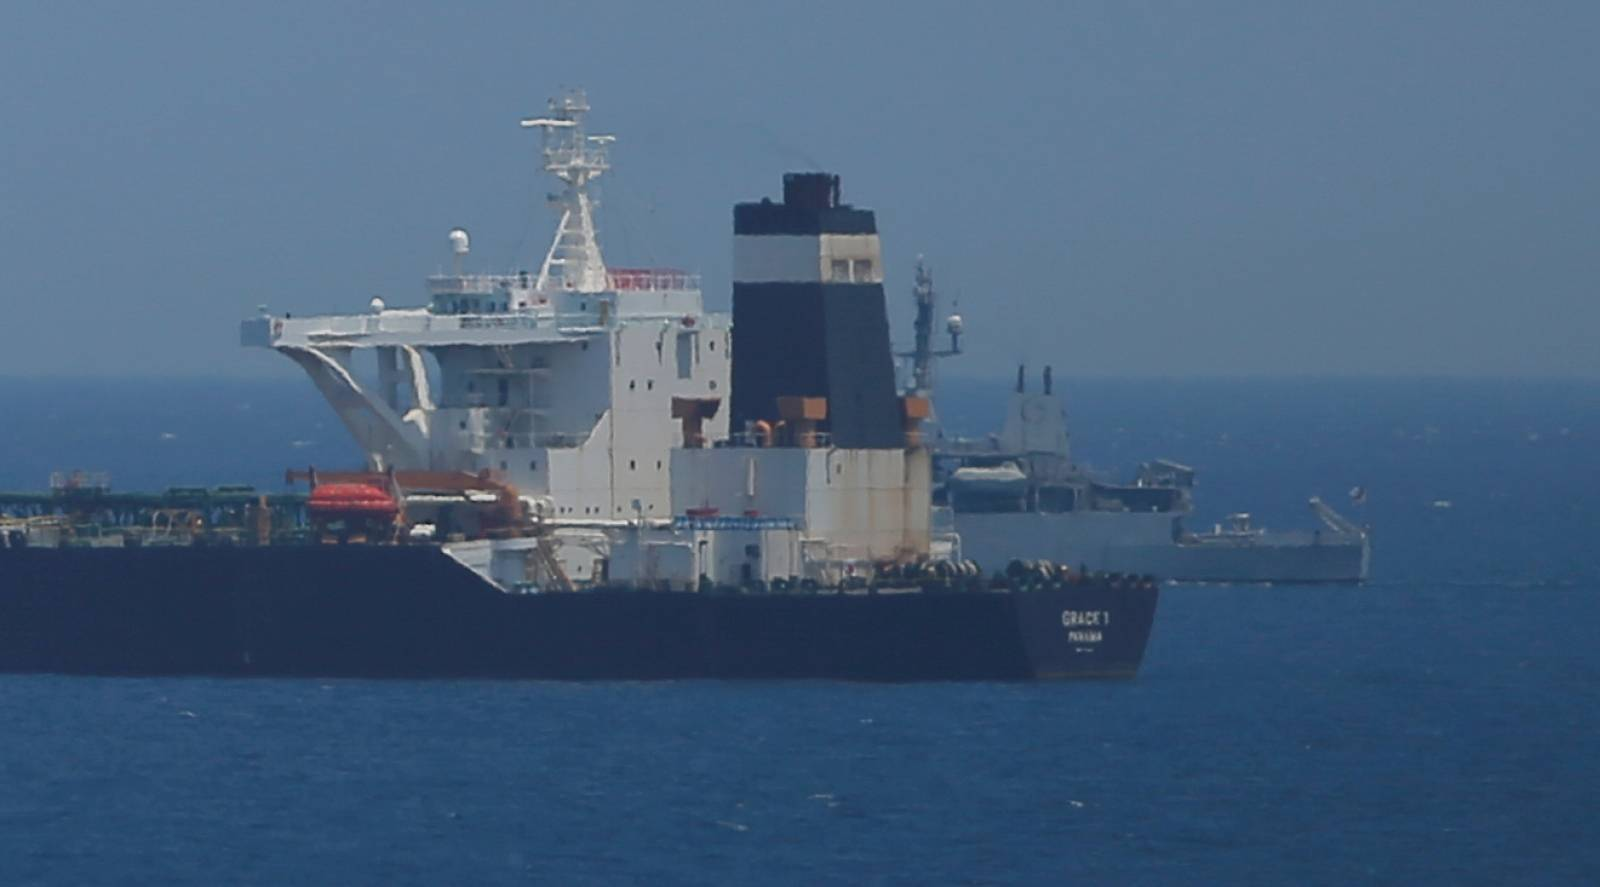 FILE PHOTO: Oil supertanker Grace 1 sits anchored in waters of the British overseas territory of Gibraltar